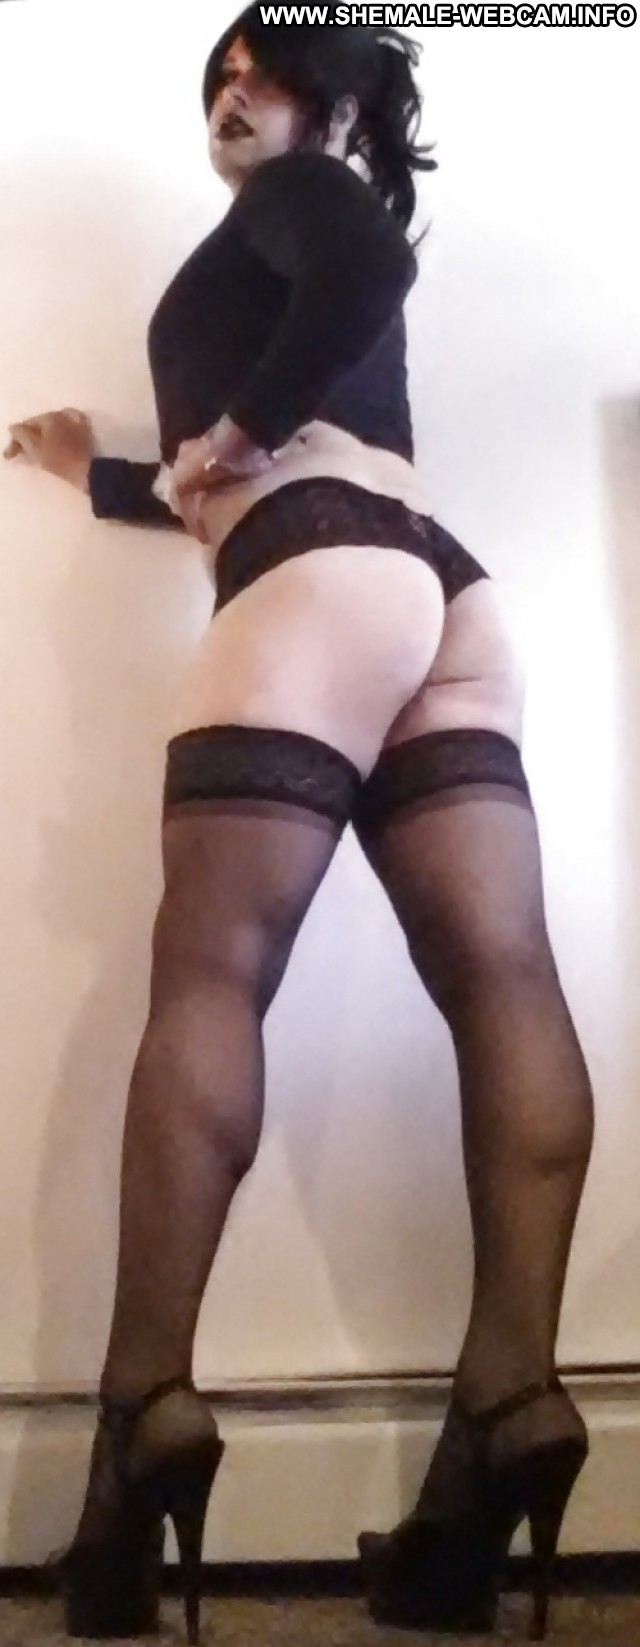 Shemale amateur in lingerie jerking her cock 8